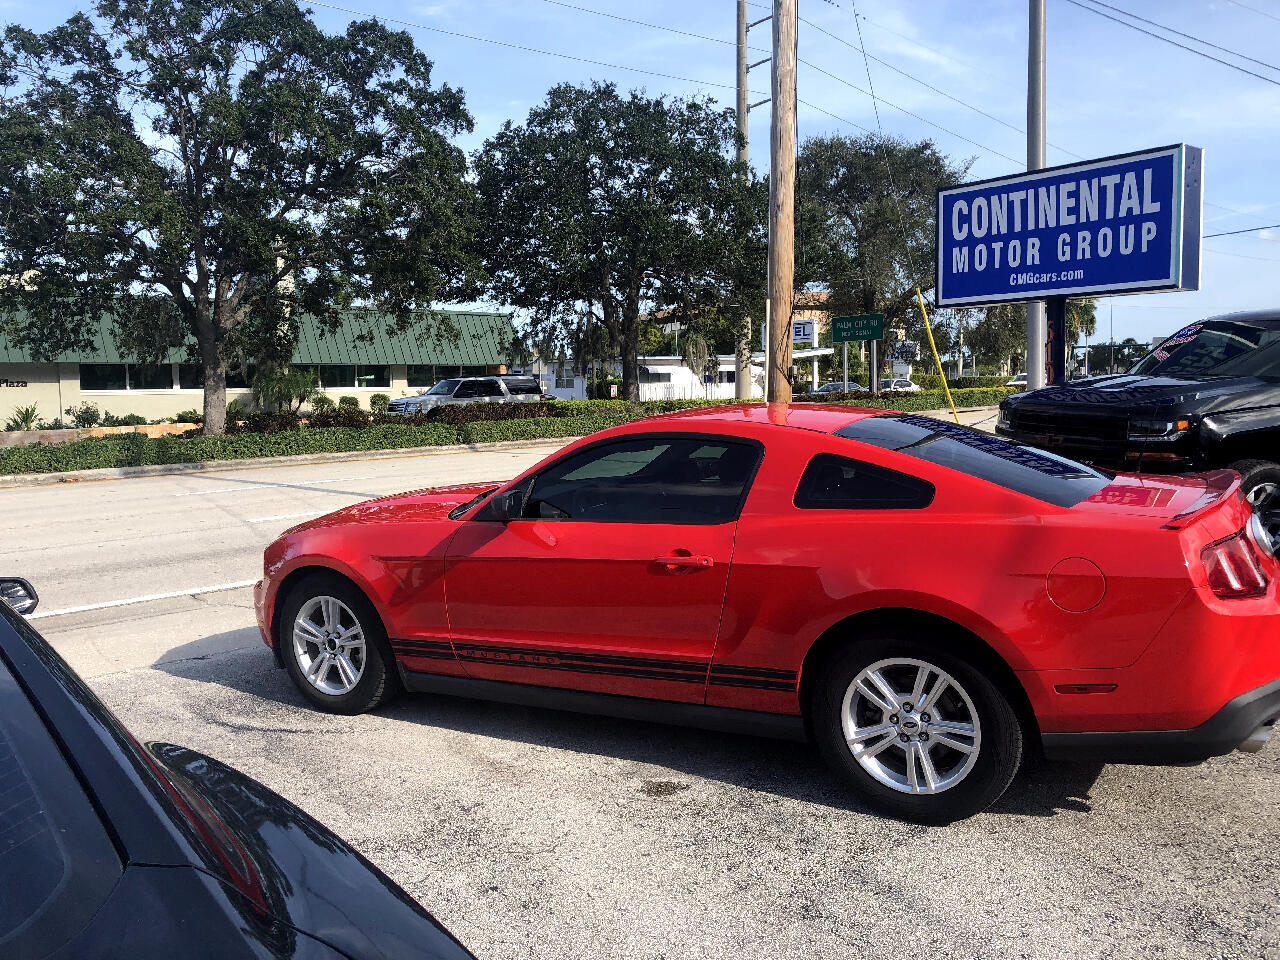 Ford Mustang 2dr Cpe V6 2012